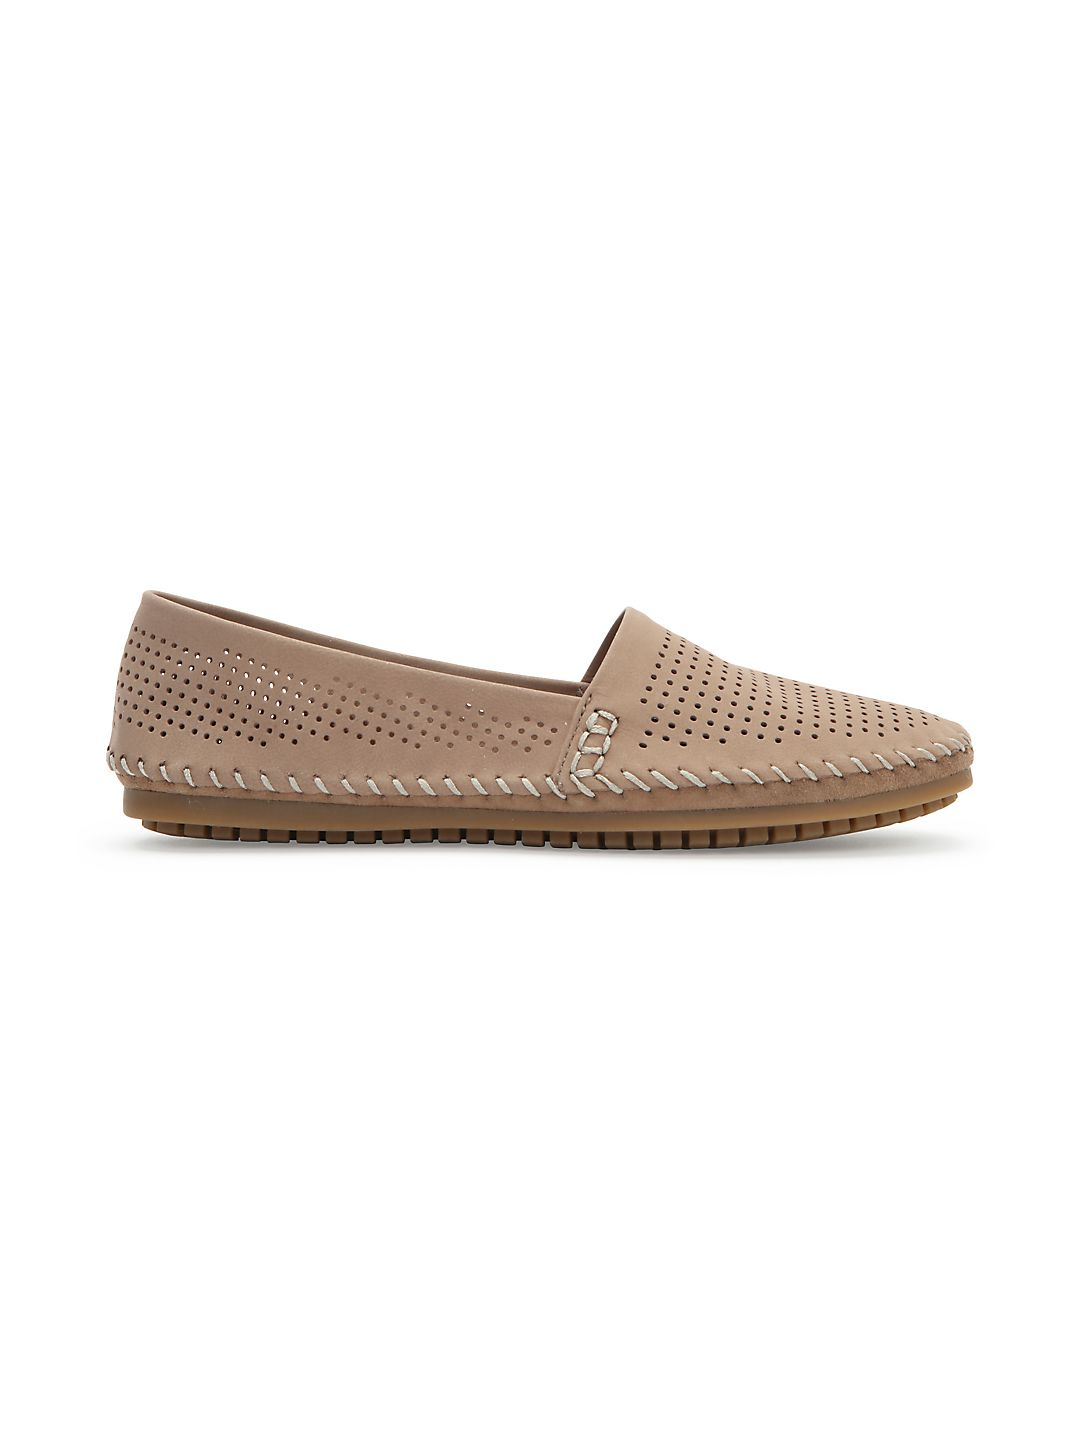 Seaside Perforated Slip-On Shoes